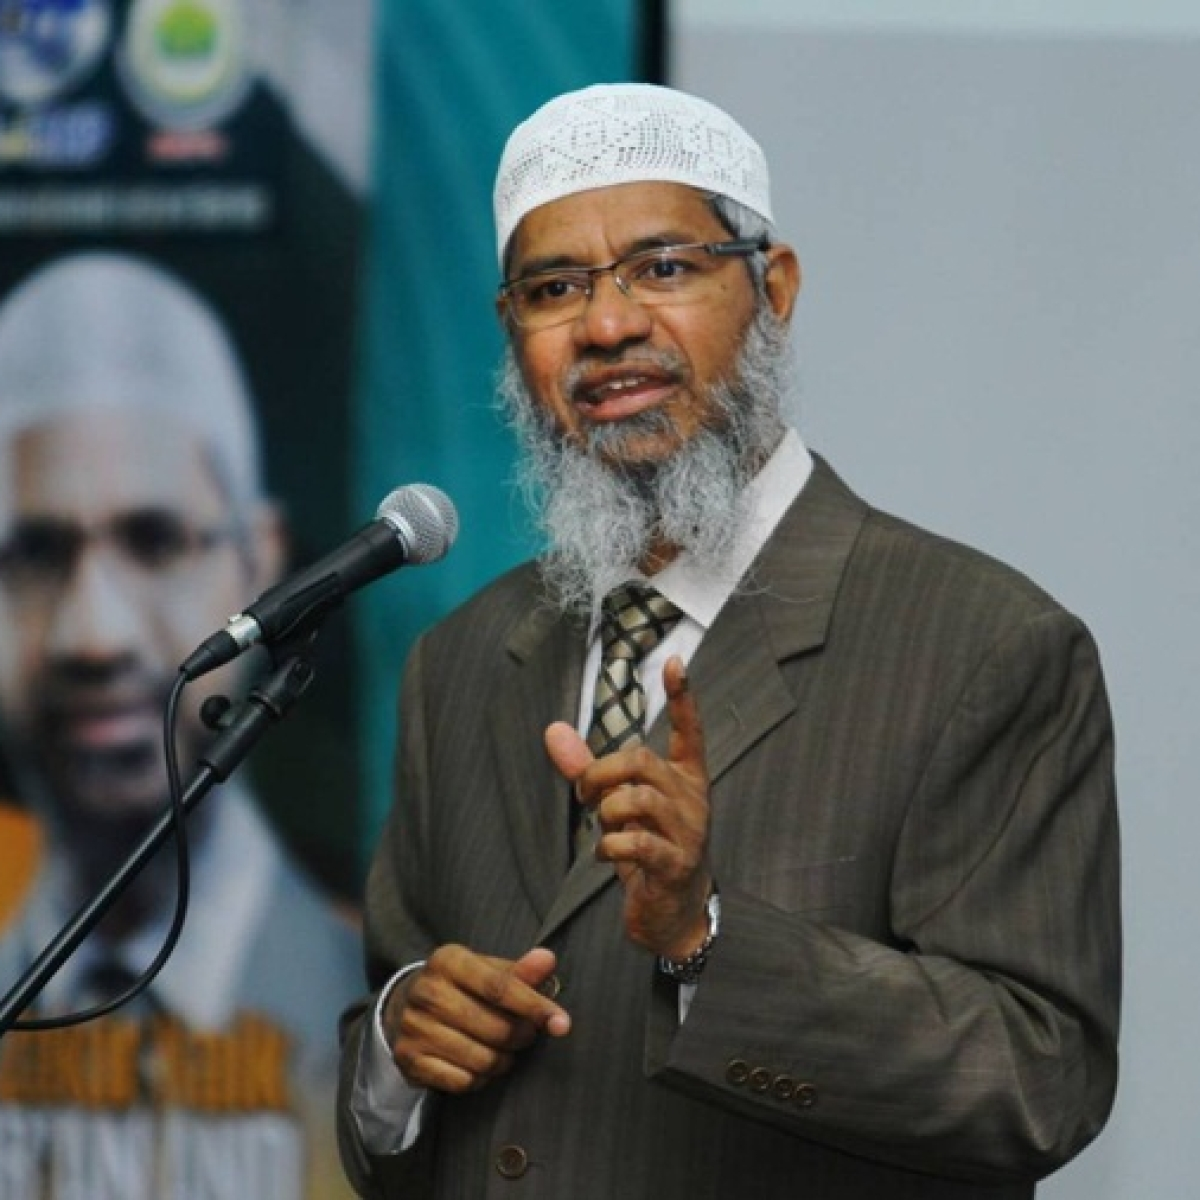 Zakir Naik apologises to Malaysians for racial remarks which sparked calls for his ban